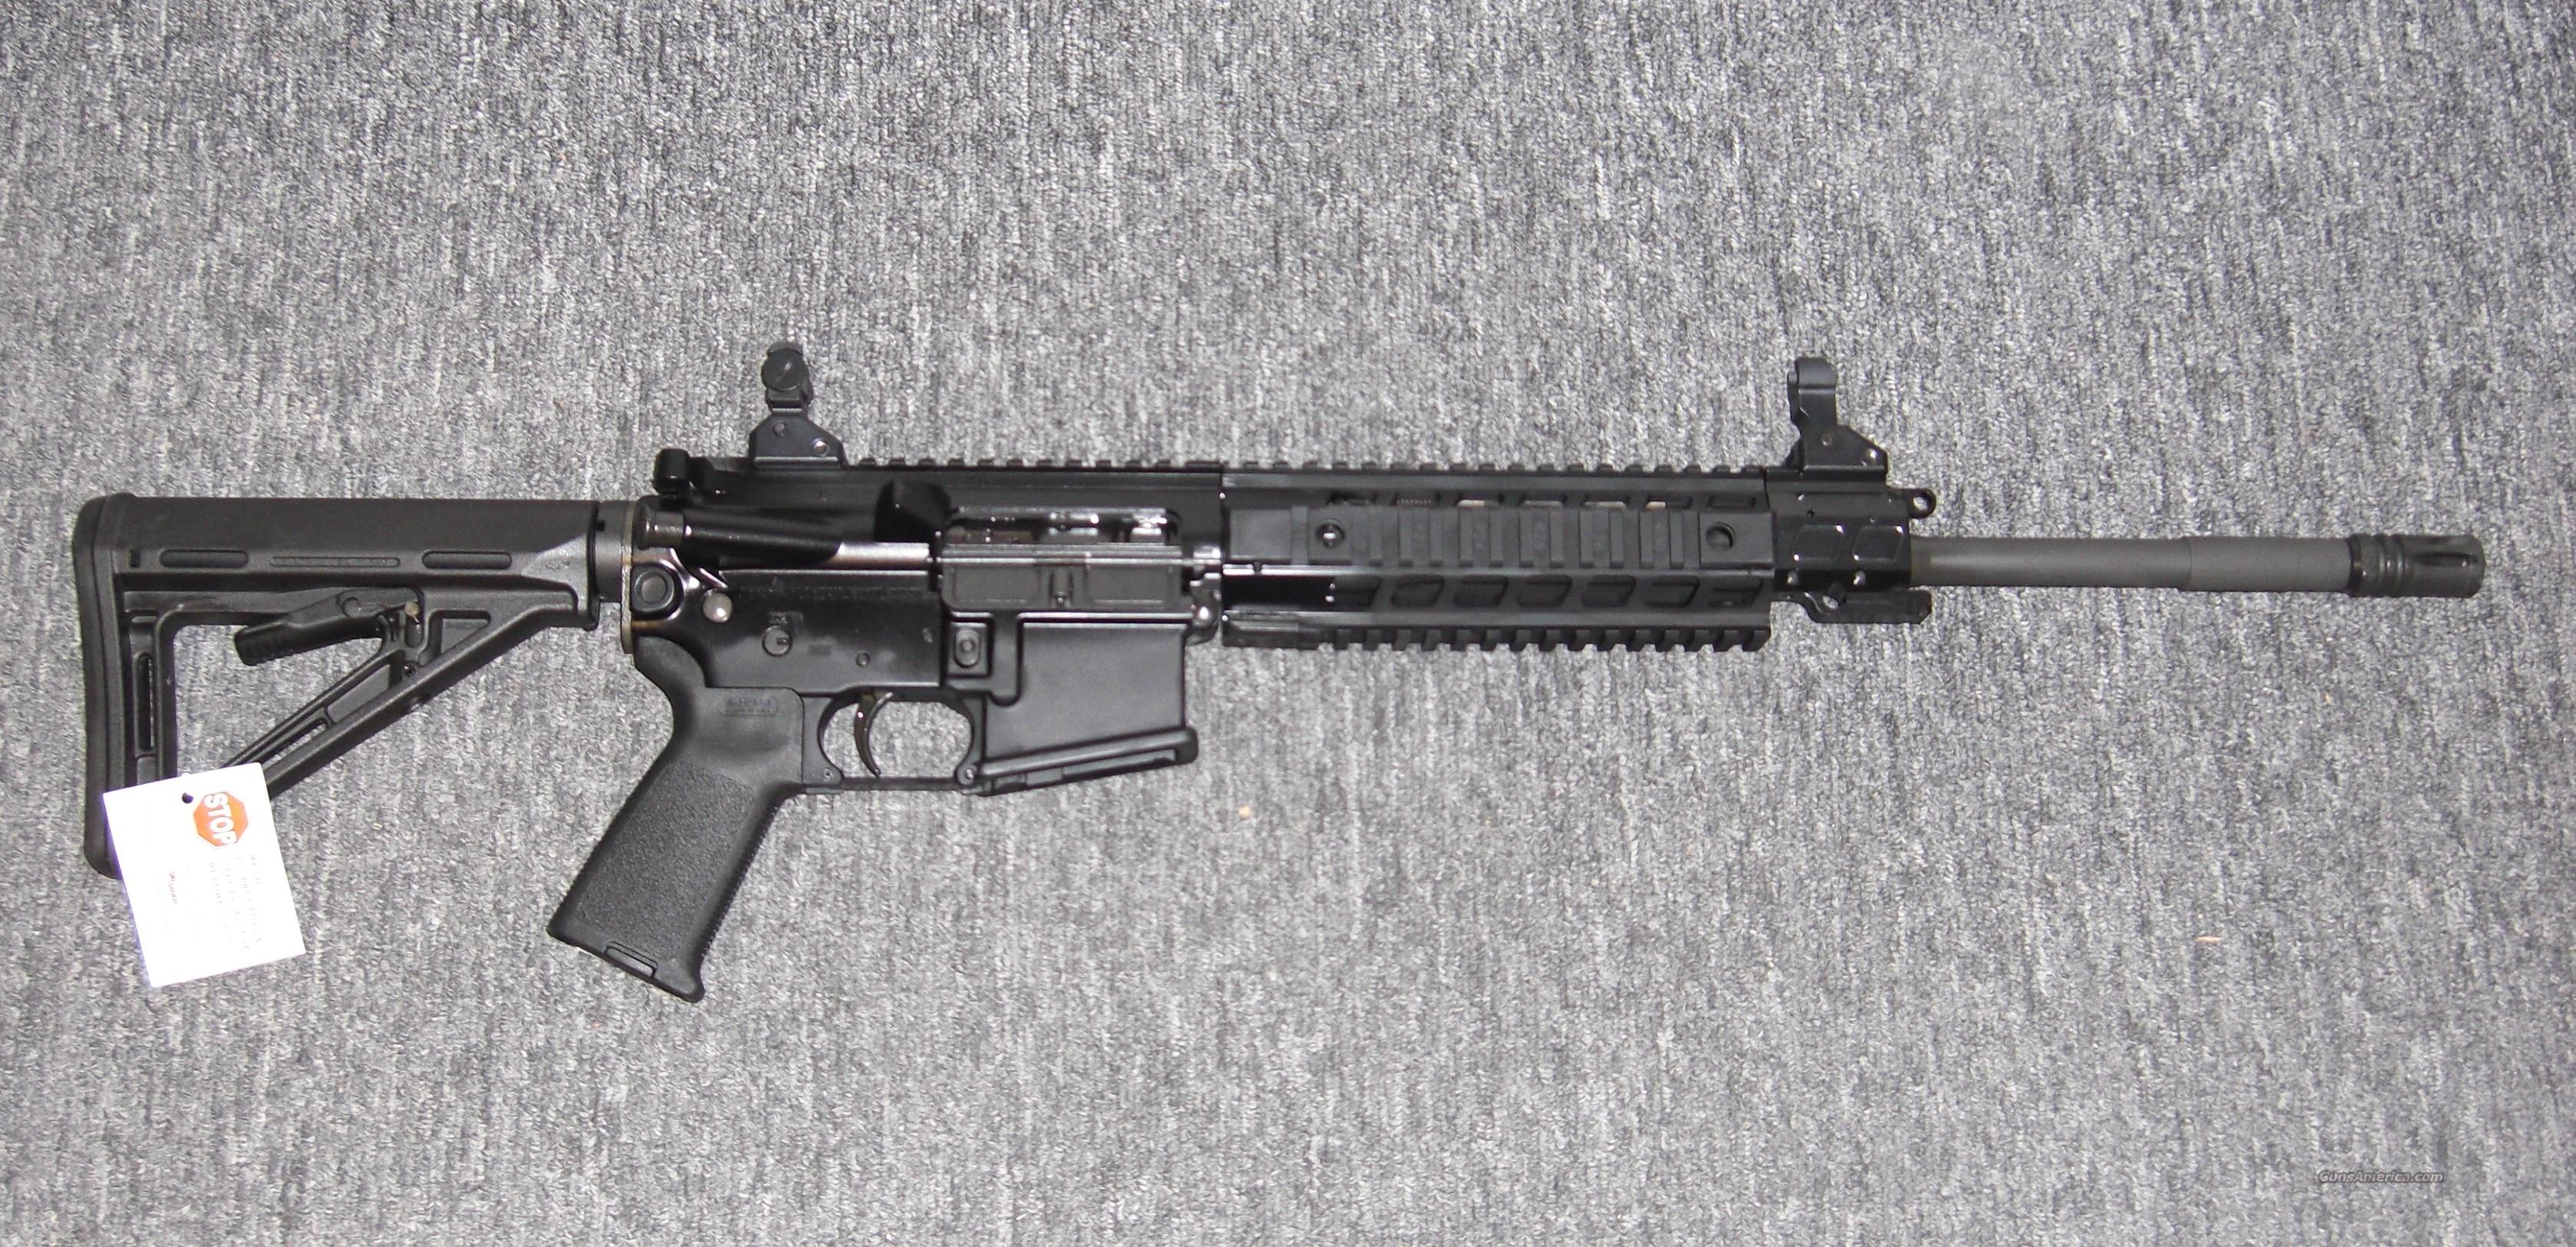 Sig 516 Patrol rifle w/quad railed forearm  Guns > Rifles > Sig - Sauer/Sigarms Rifles